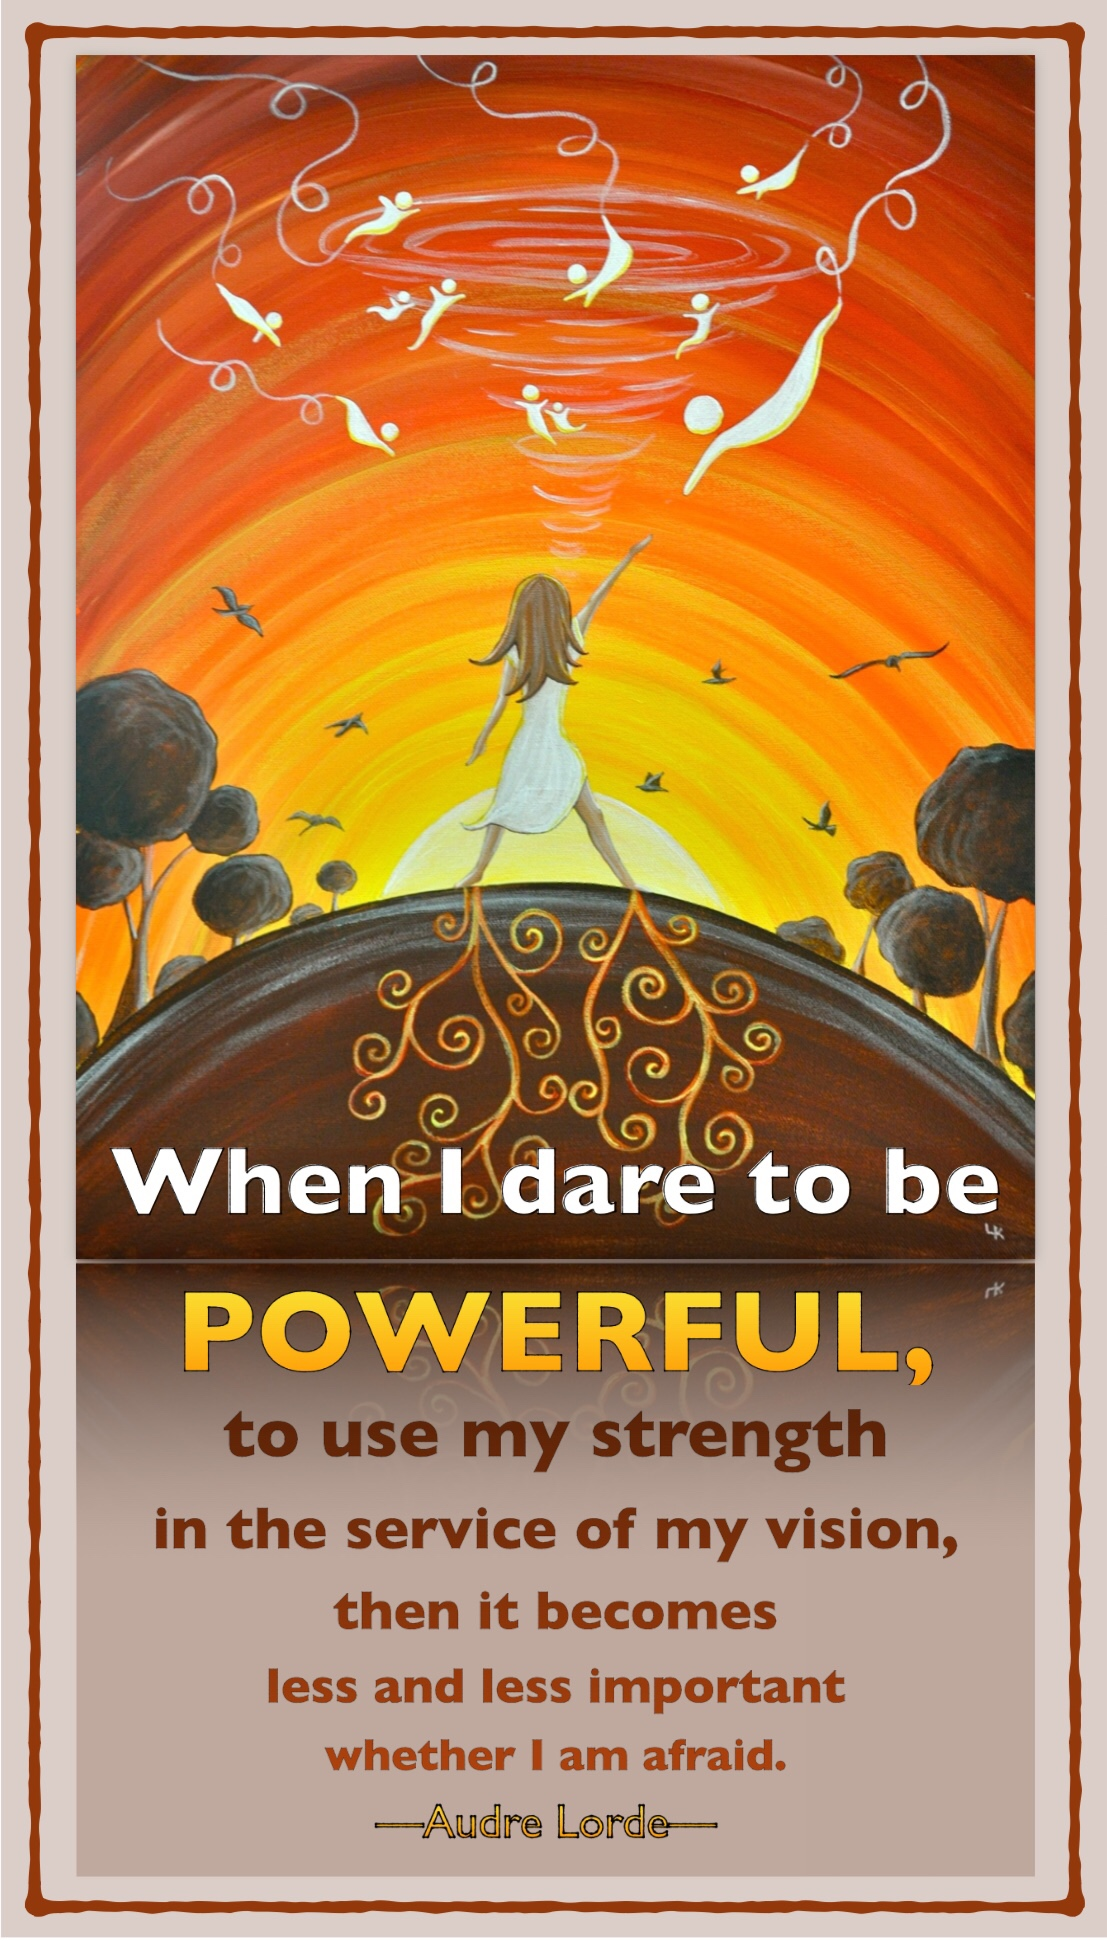 """When I dare to be powerful, to use my strength in the service of my vision, then it becomes less and less important whether I am afraid."" ― Audre Lorde [1107 x 1941] [OC]"